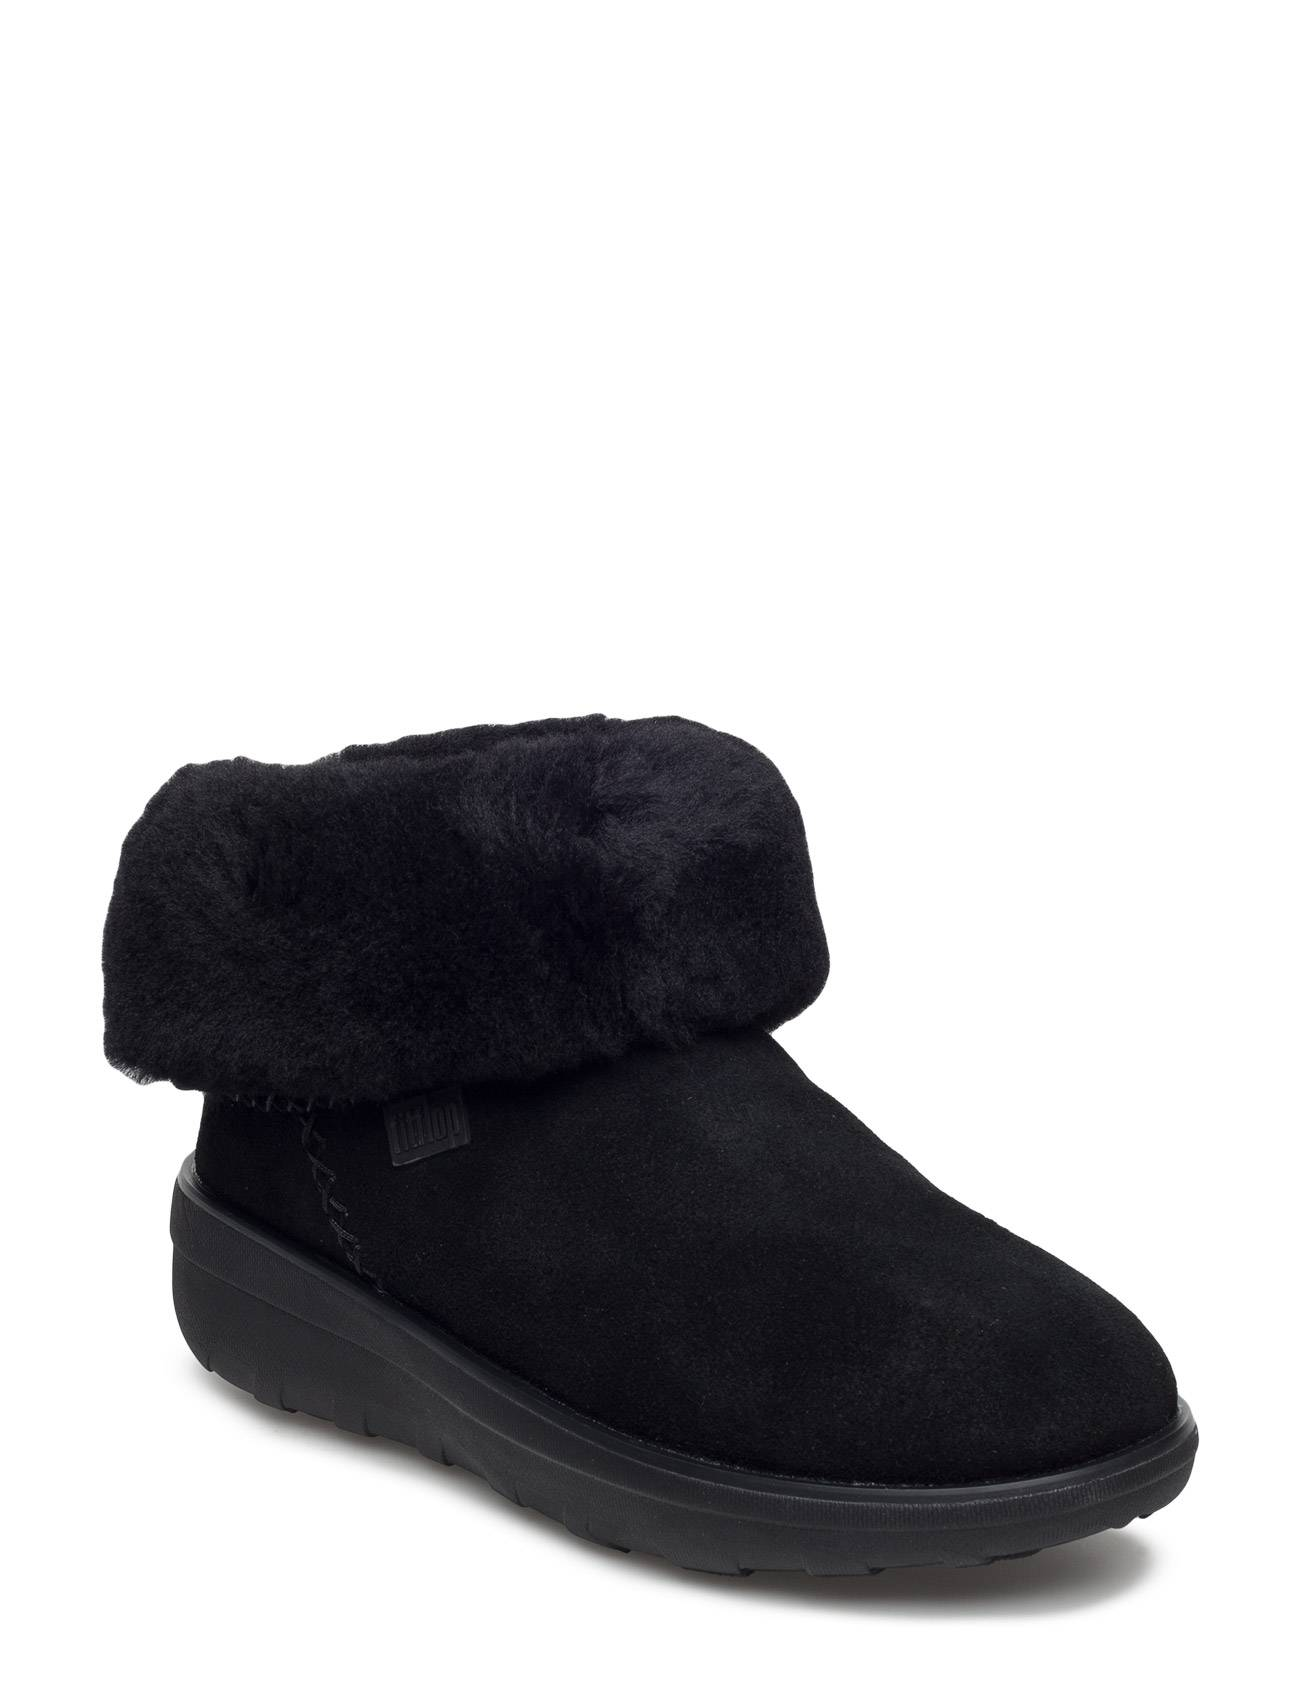 FitFlop Supercush Mukloaff Shorty